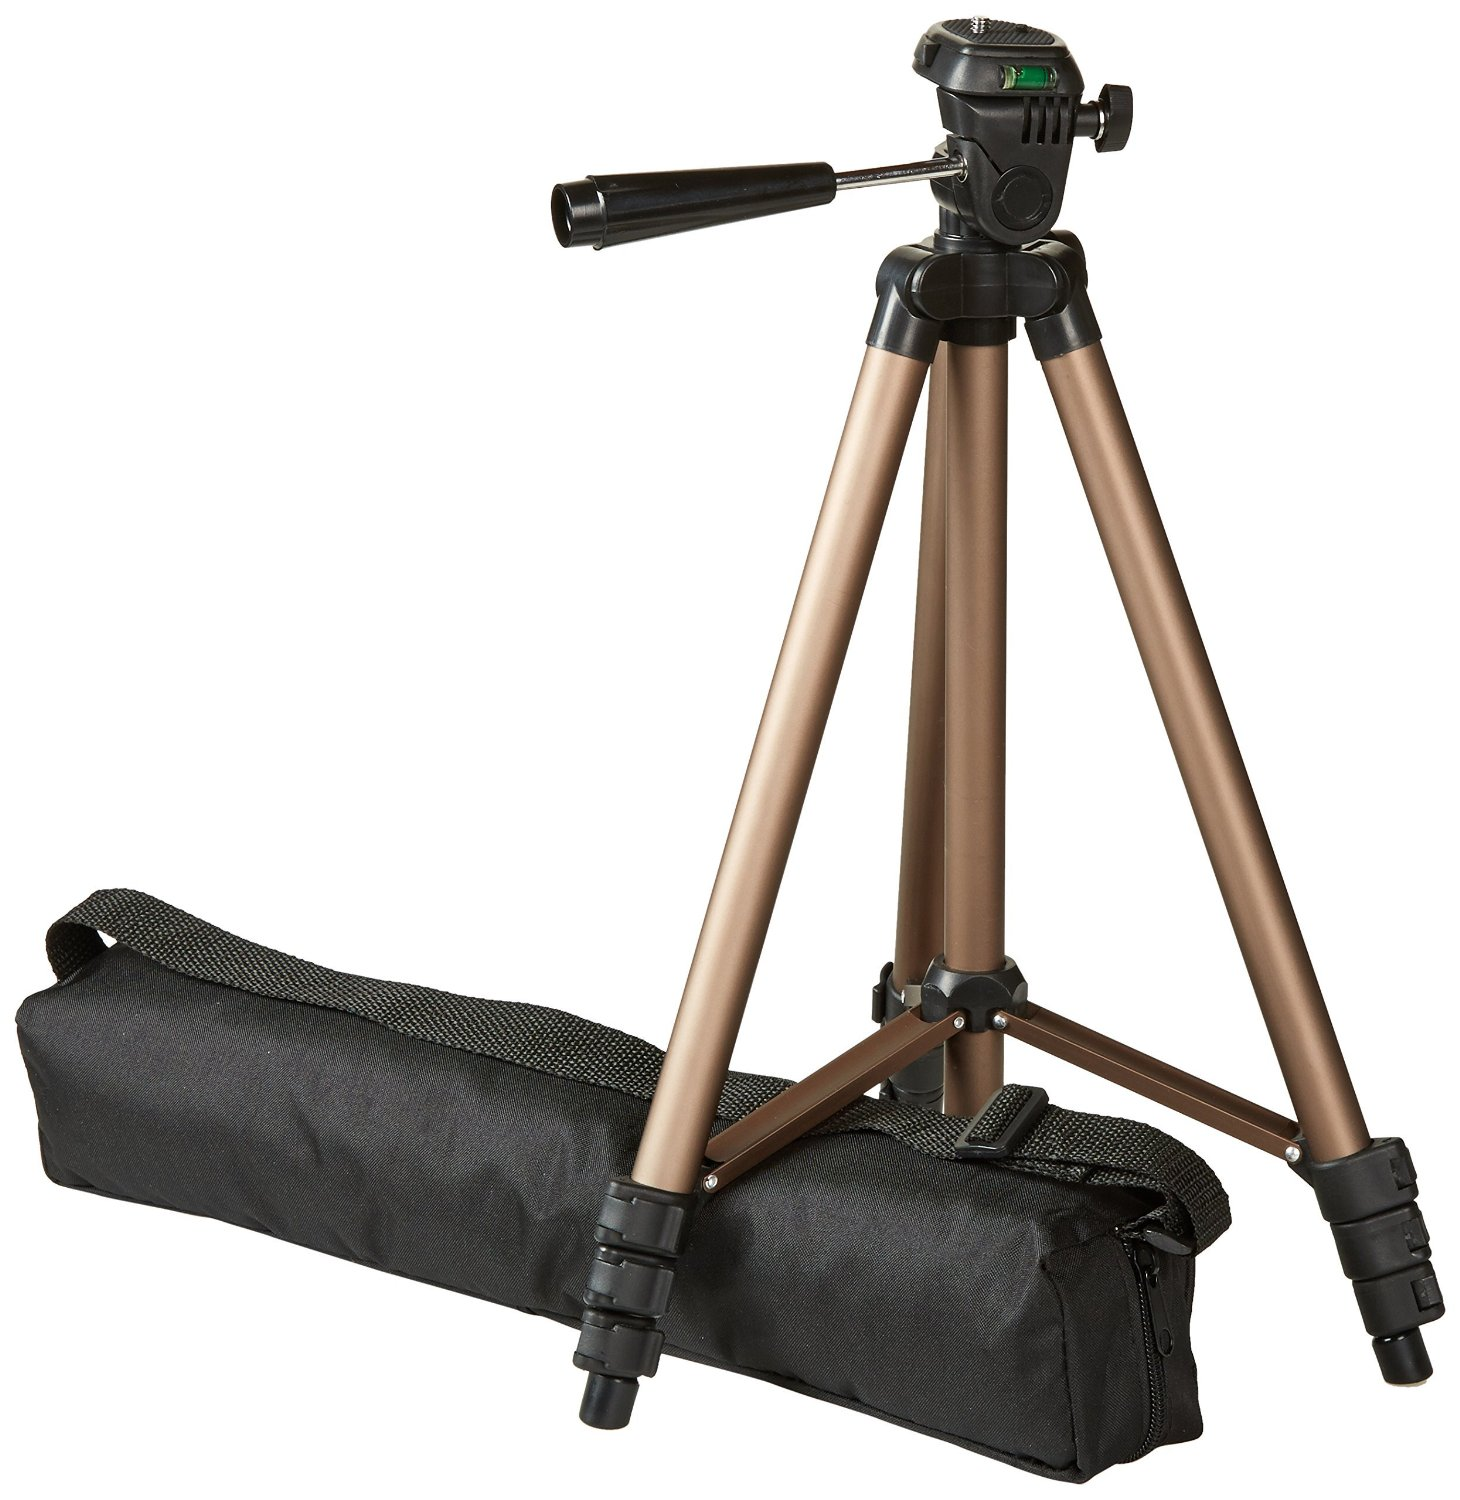 AmazonBasics accessory Tripod, best cheap tripod, best camera tripod stand, tripod stand